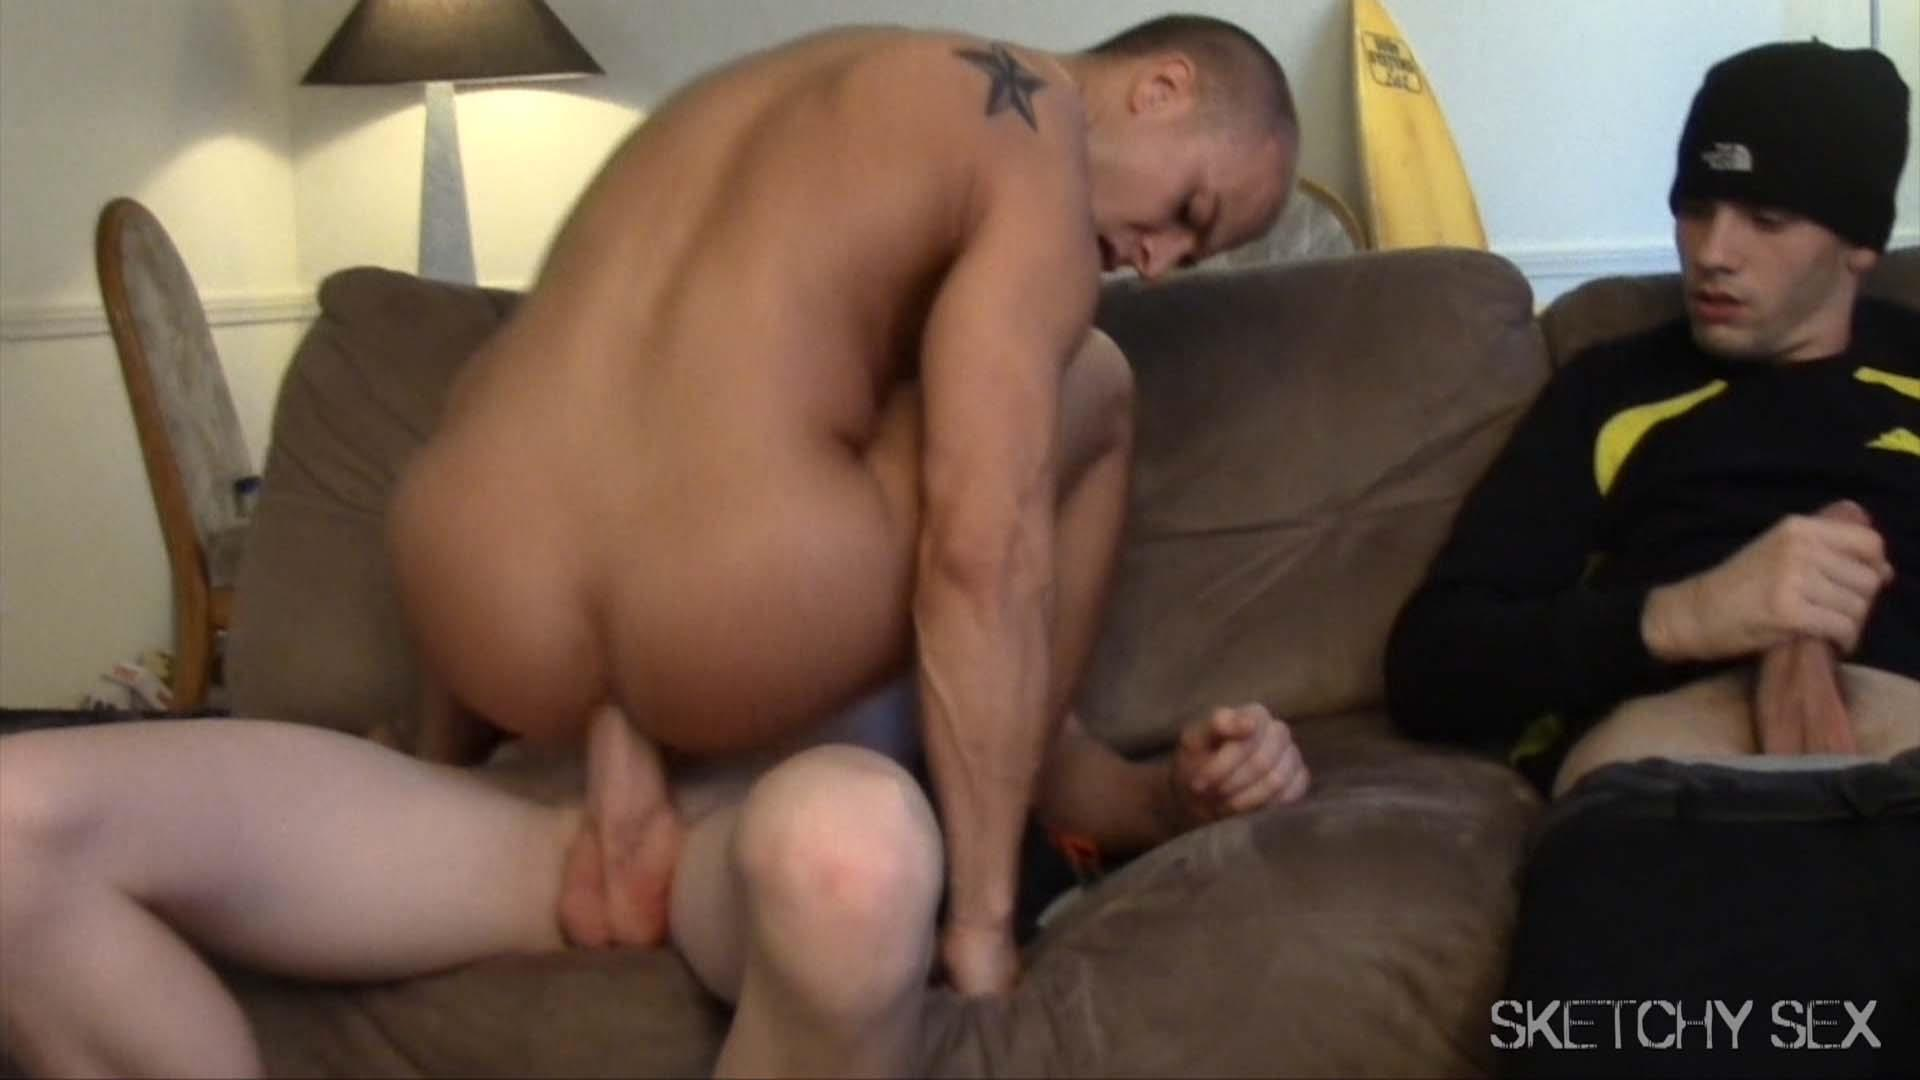 Amateur boy jocks xxx hot naked gay porn 8